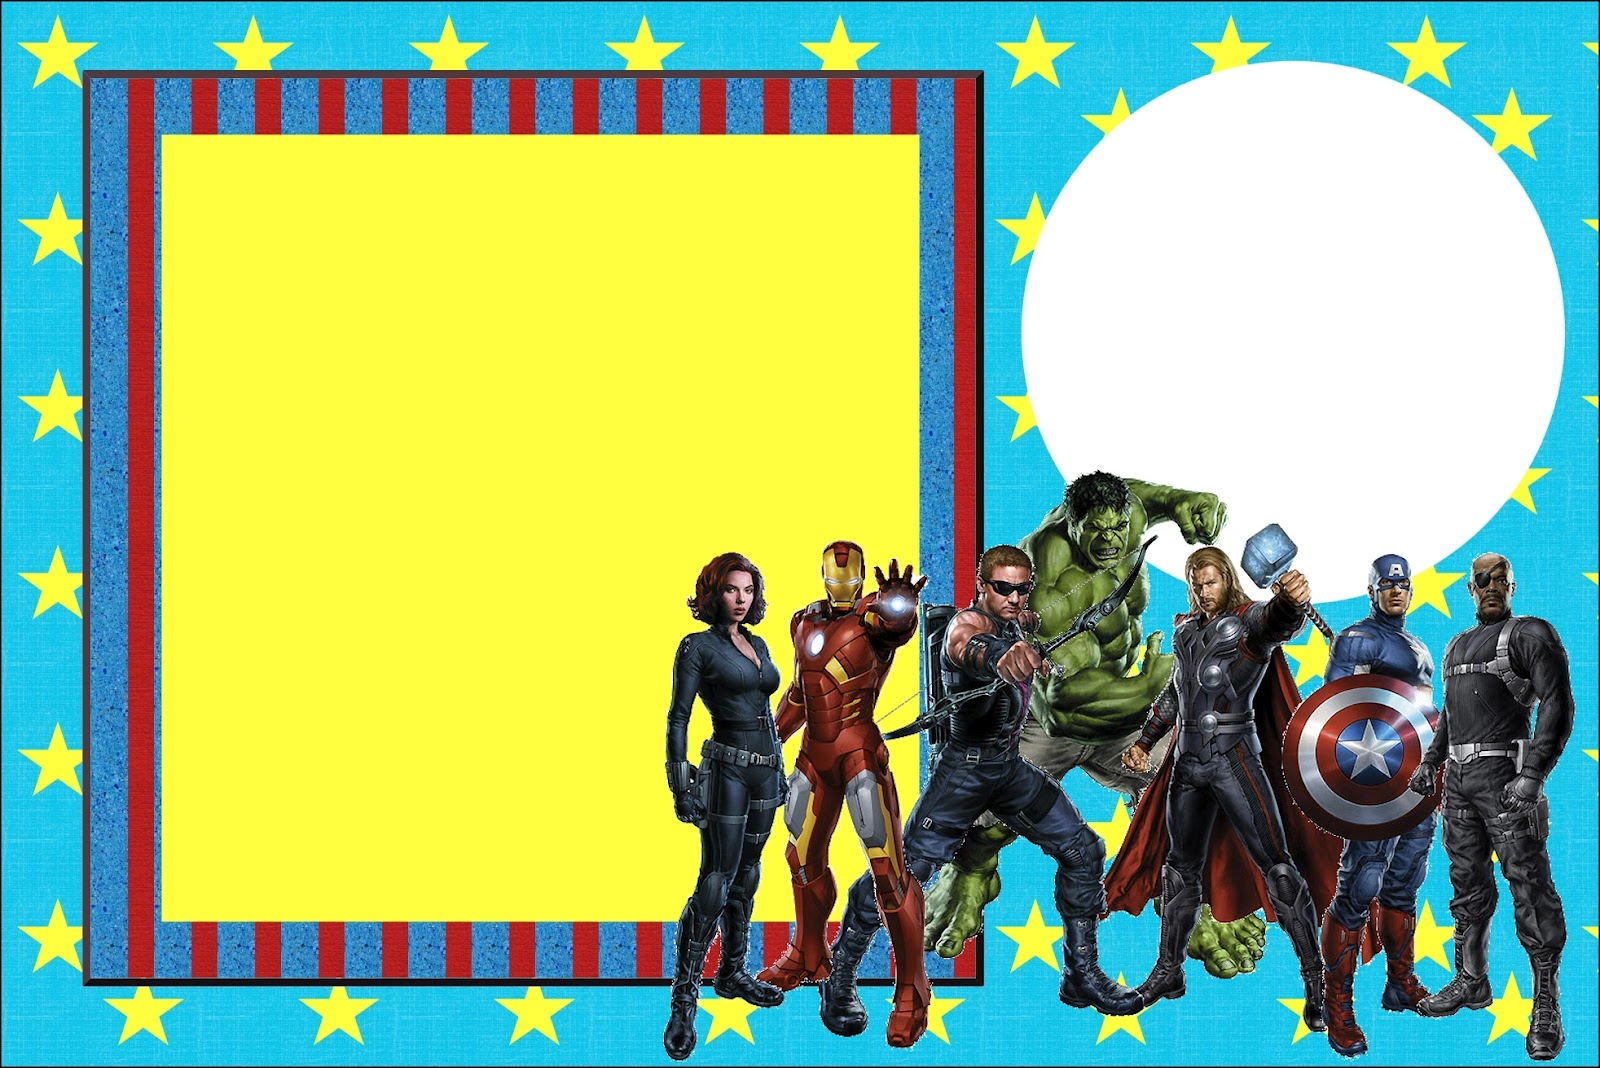 Avengers Free Printable Invitations. | Is it for PARTIES? Is it FREE? Is it CUTE? Has QUALITY ...